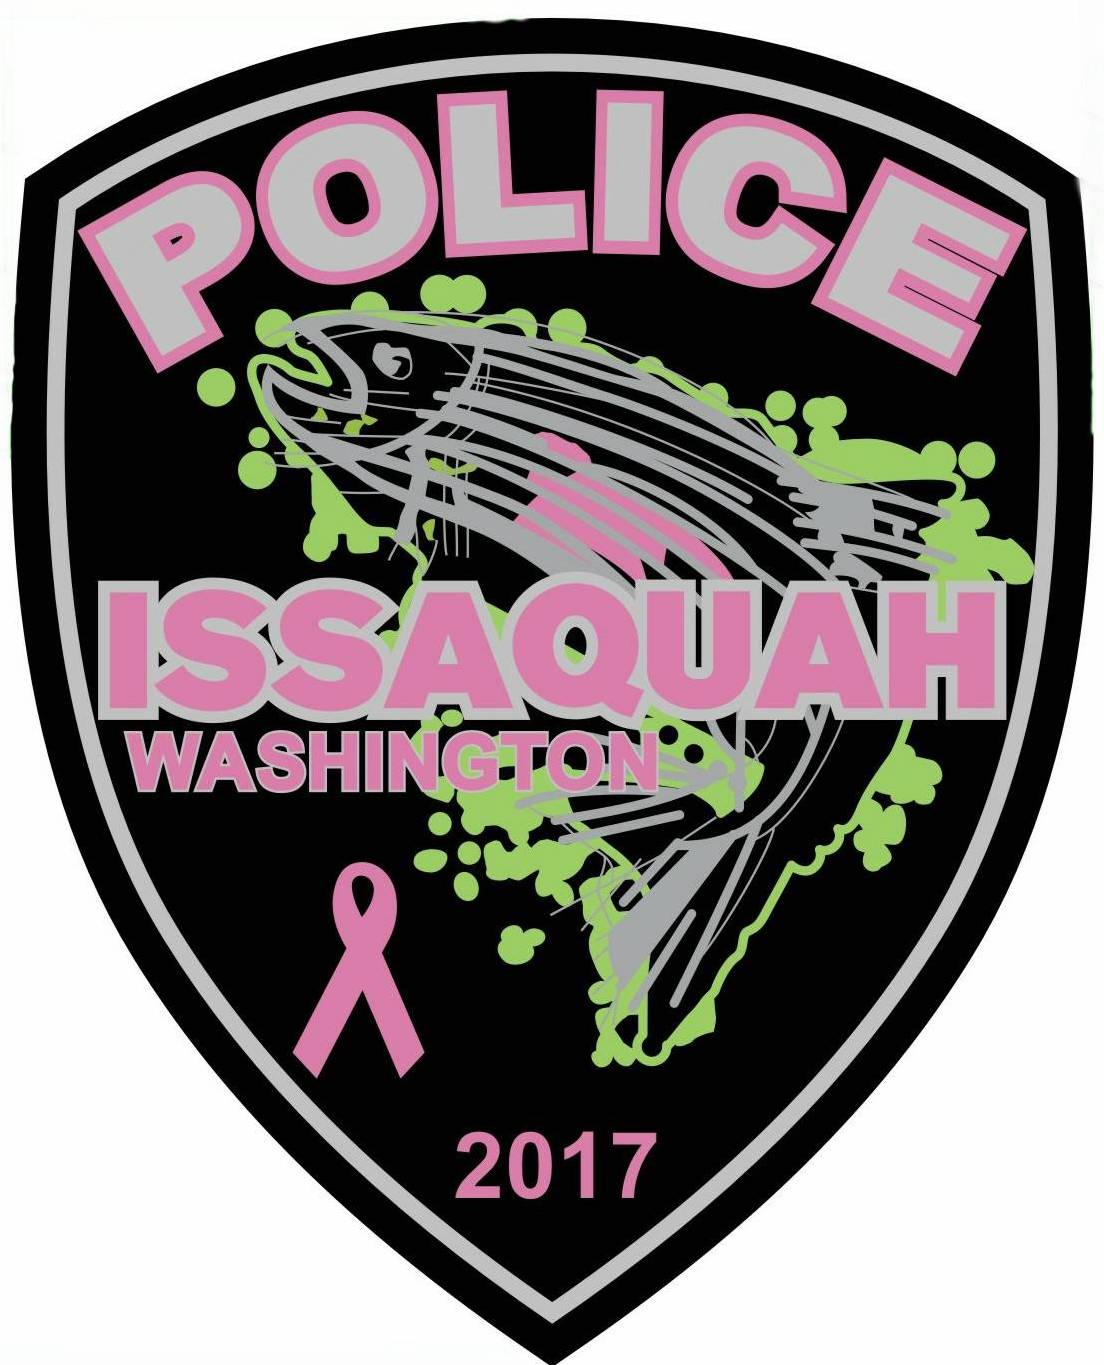 Issaquah_Pink_official.jpg